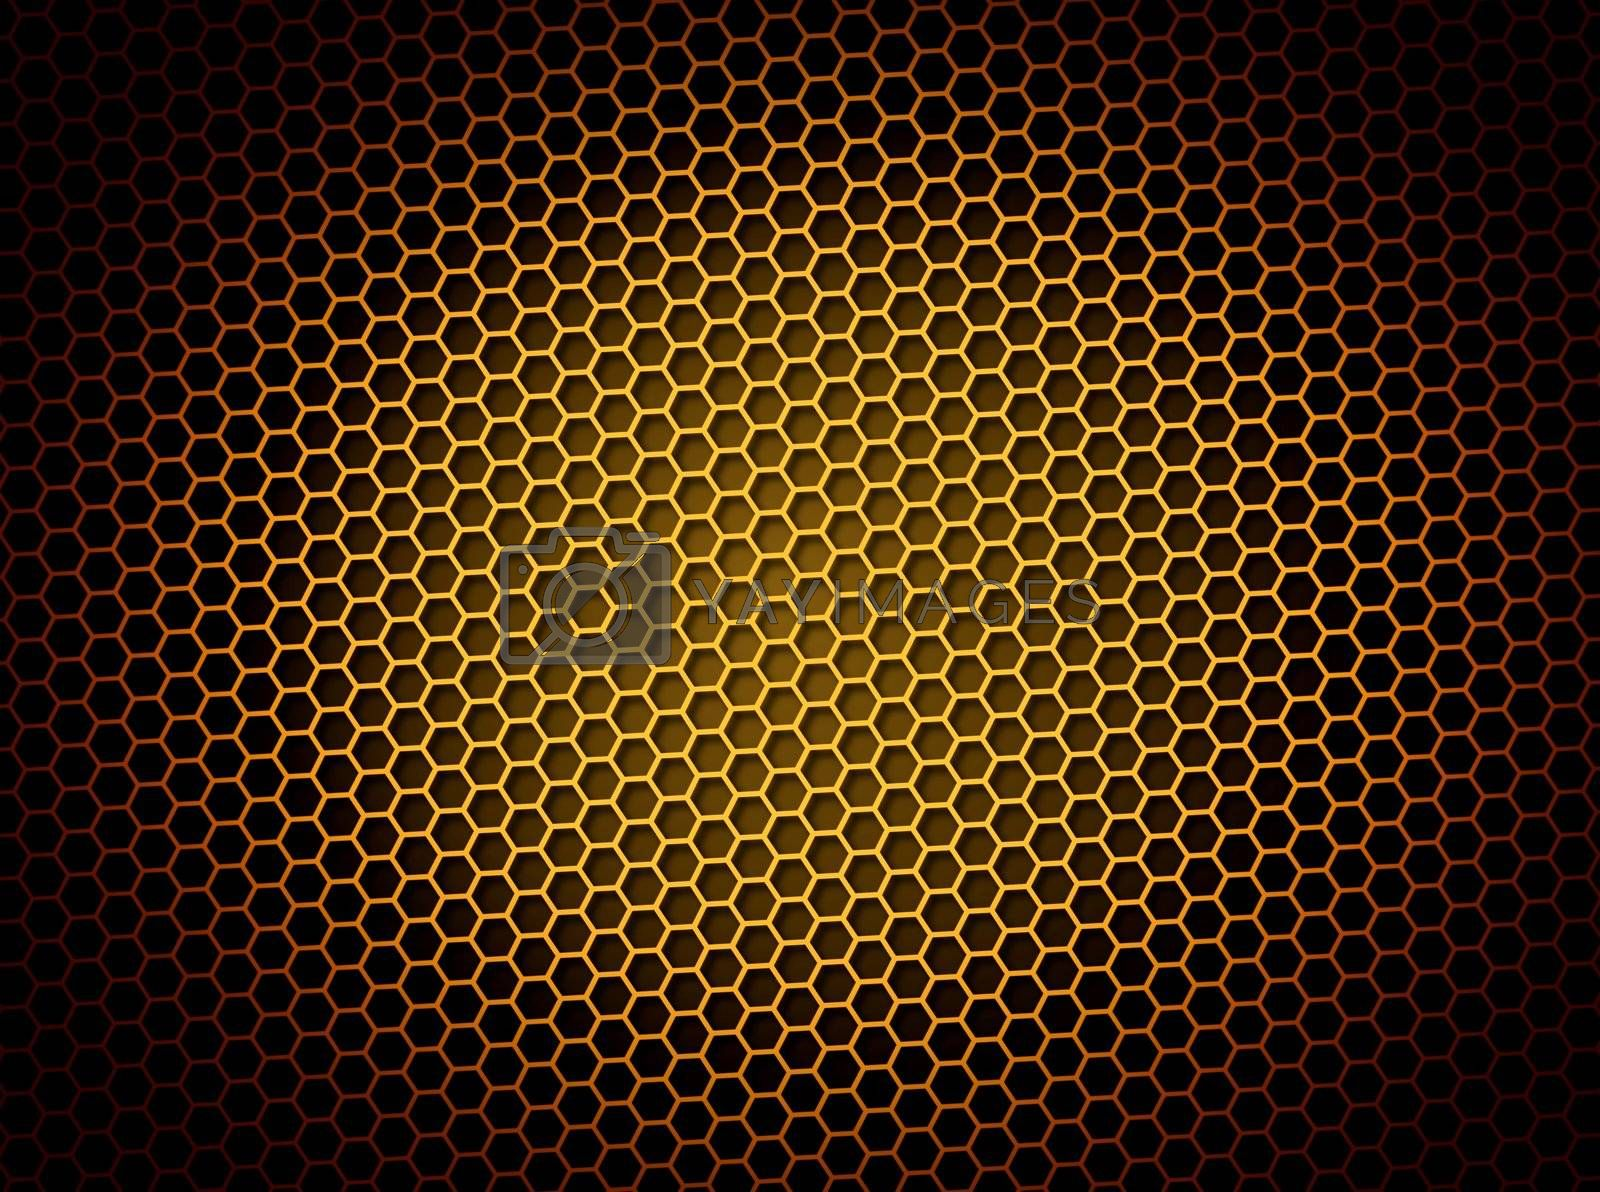 Golden honeycomb background 3d illustration or backdrop with light effect